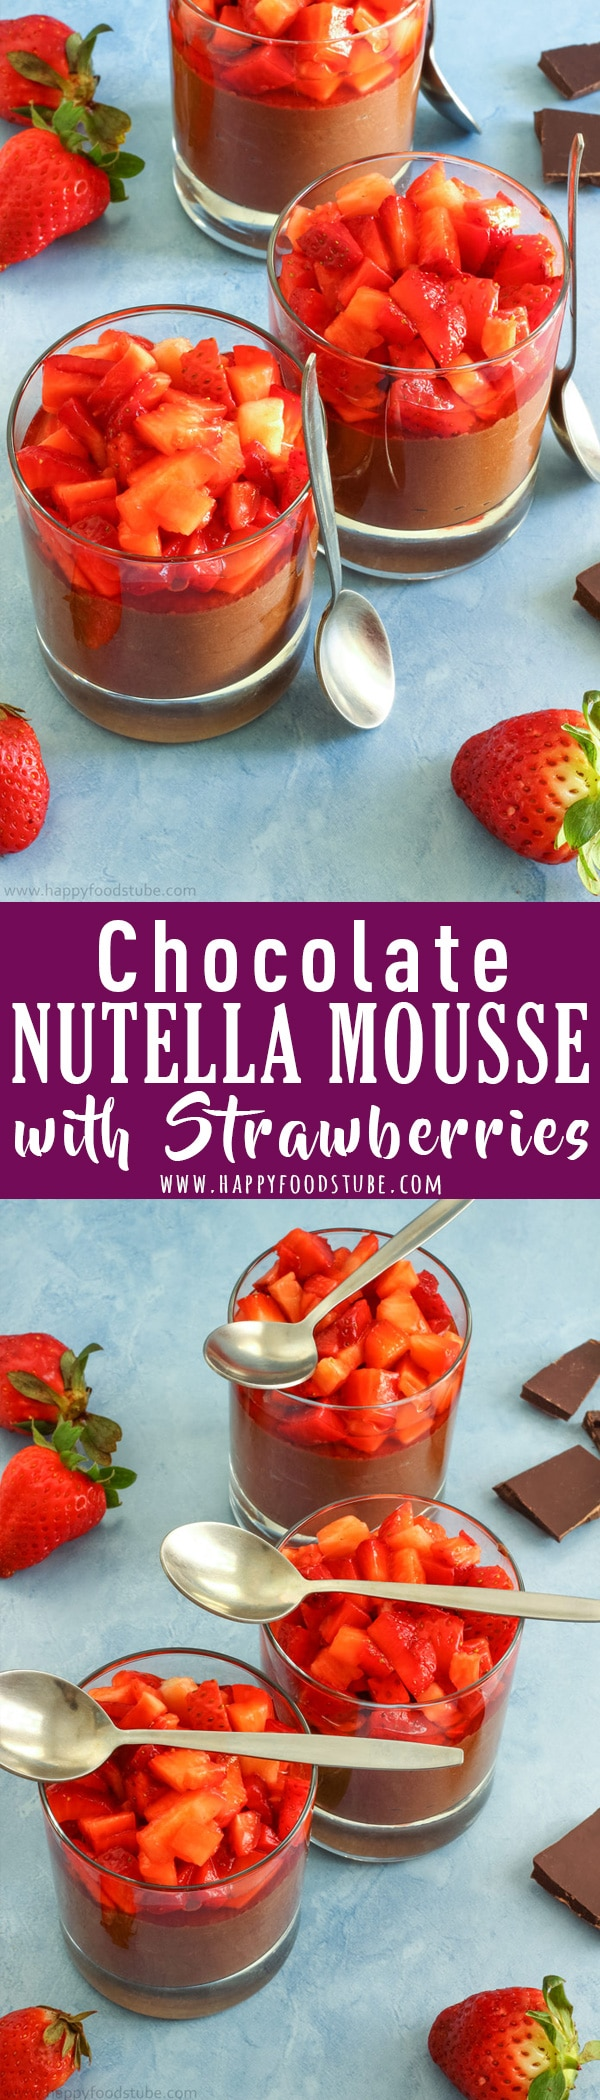 Chocolate Nutella Mousse with Strawberries is a delicious dessert for any occasion! It's rich in flavor, quick to make and tastes delicious! Easy to make desserts